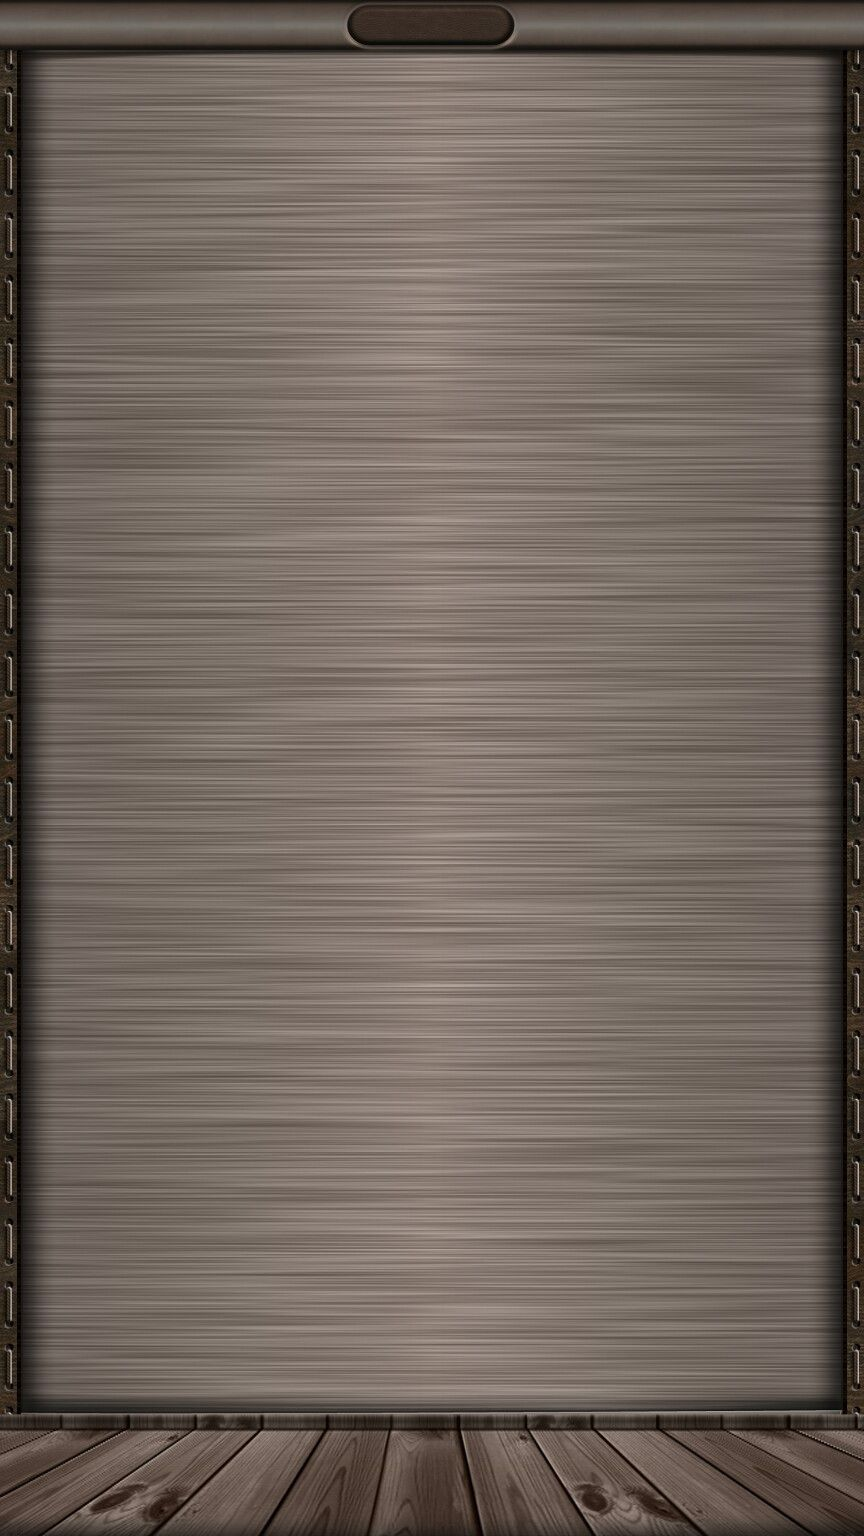 sleek neutral steel wallpaper